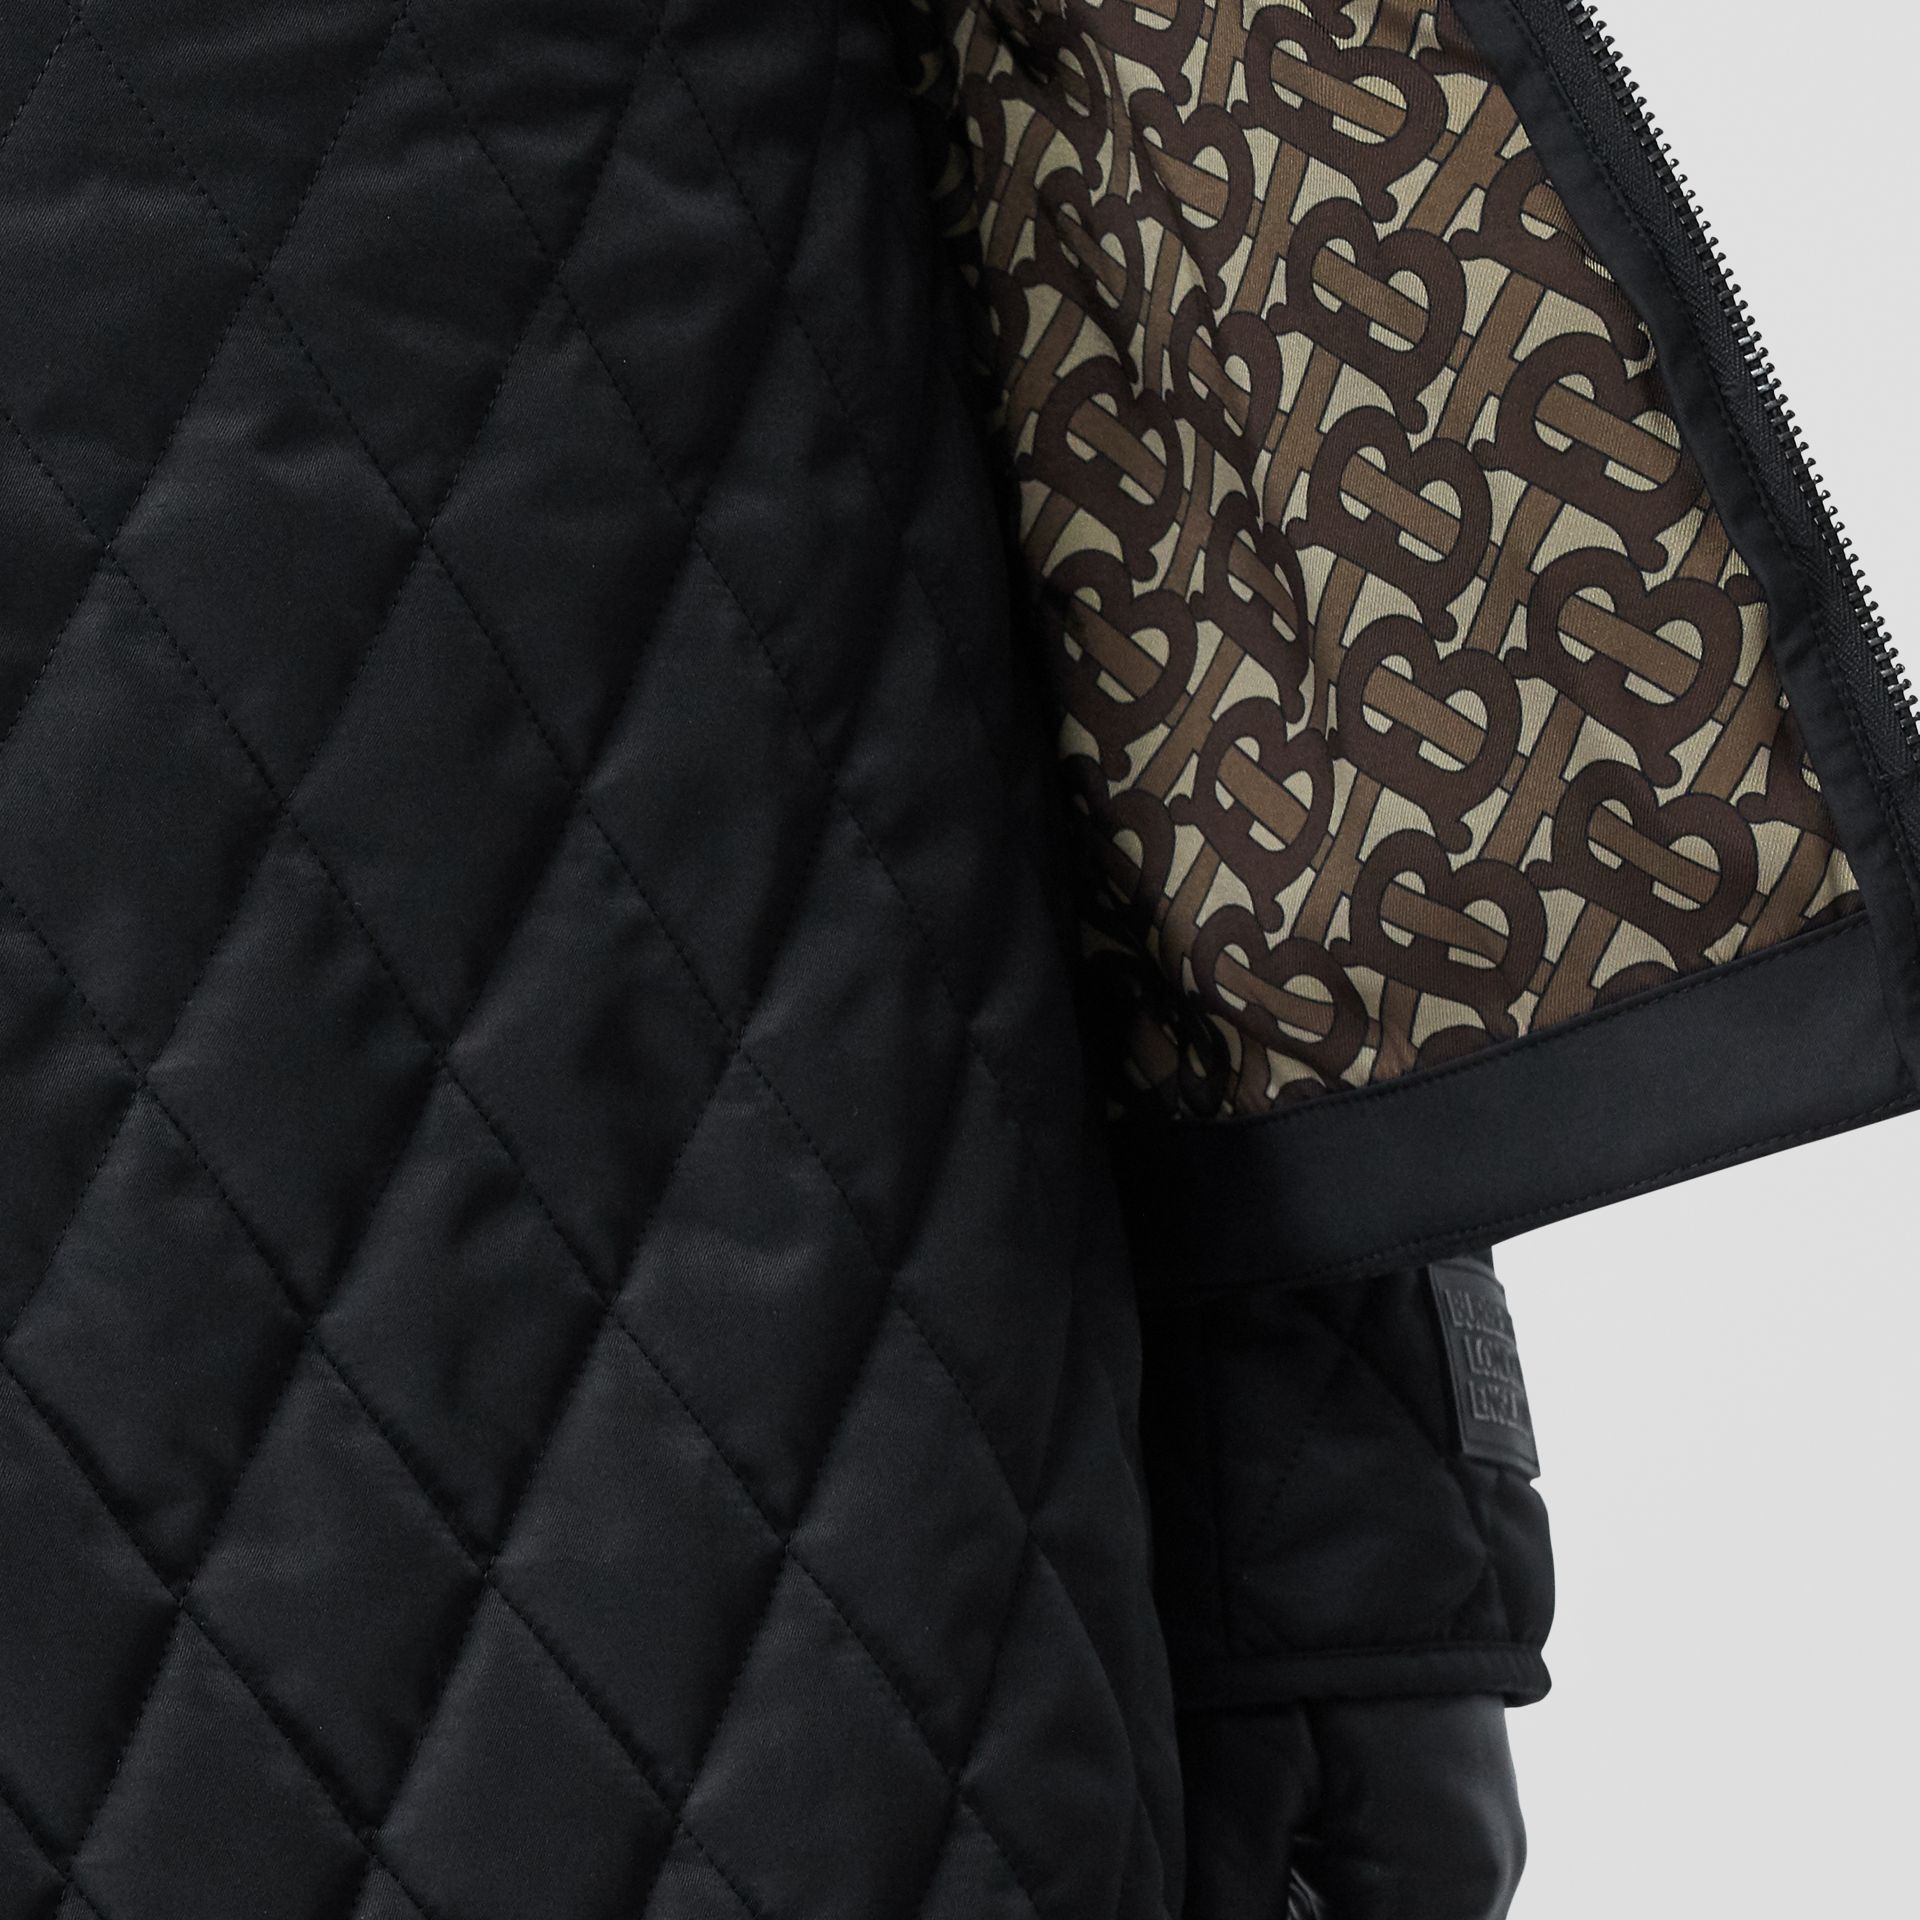 Rib Knit Panel Diamond Quilted Barn Jacket in Black - Women | Burberry United Kingdom - gallery image 5